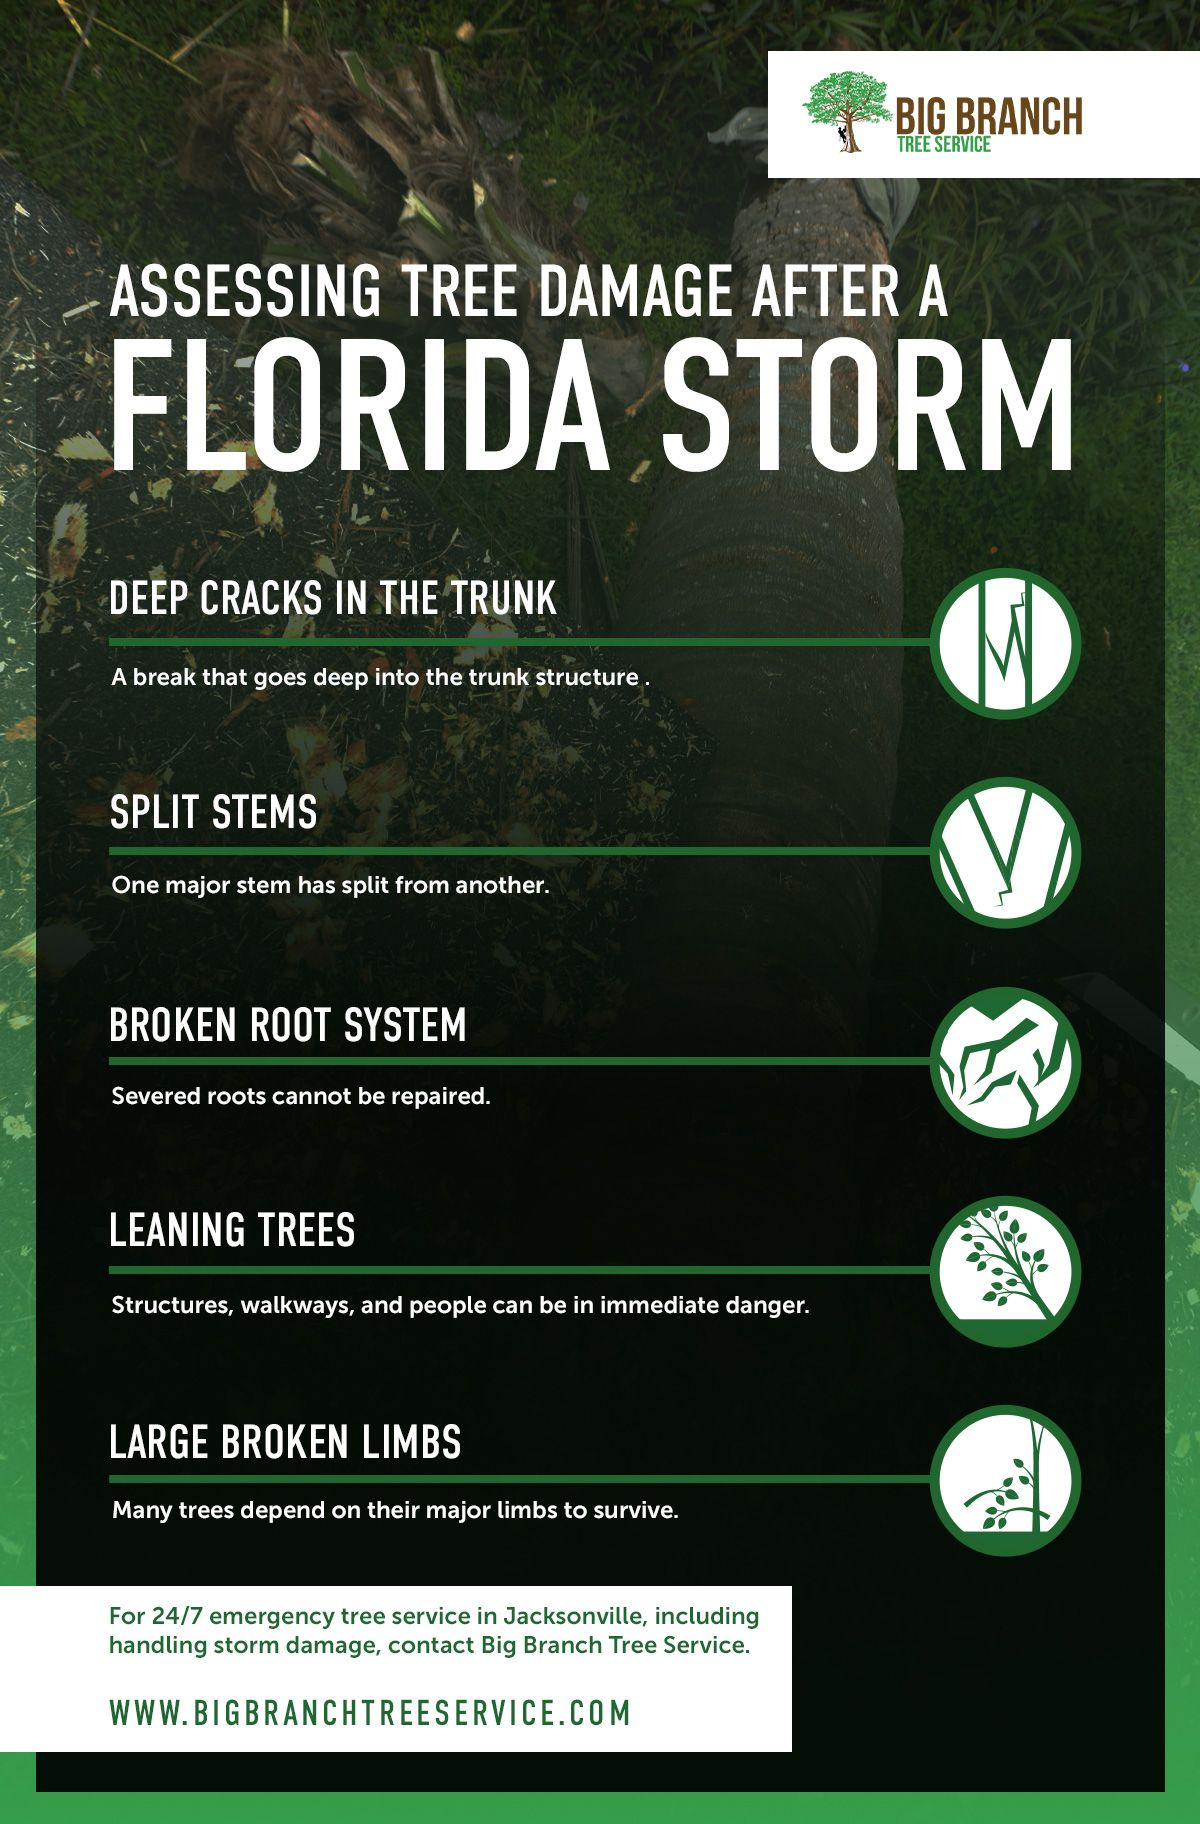 Assessing Tree Damage After a Florida Storm Infographic.jpg